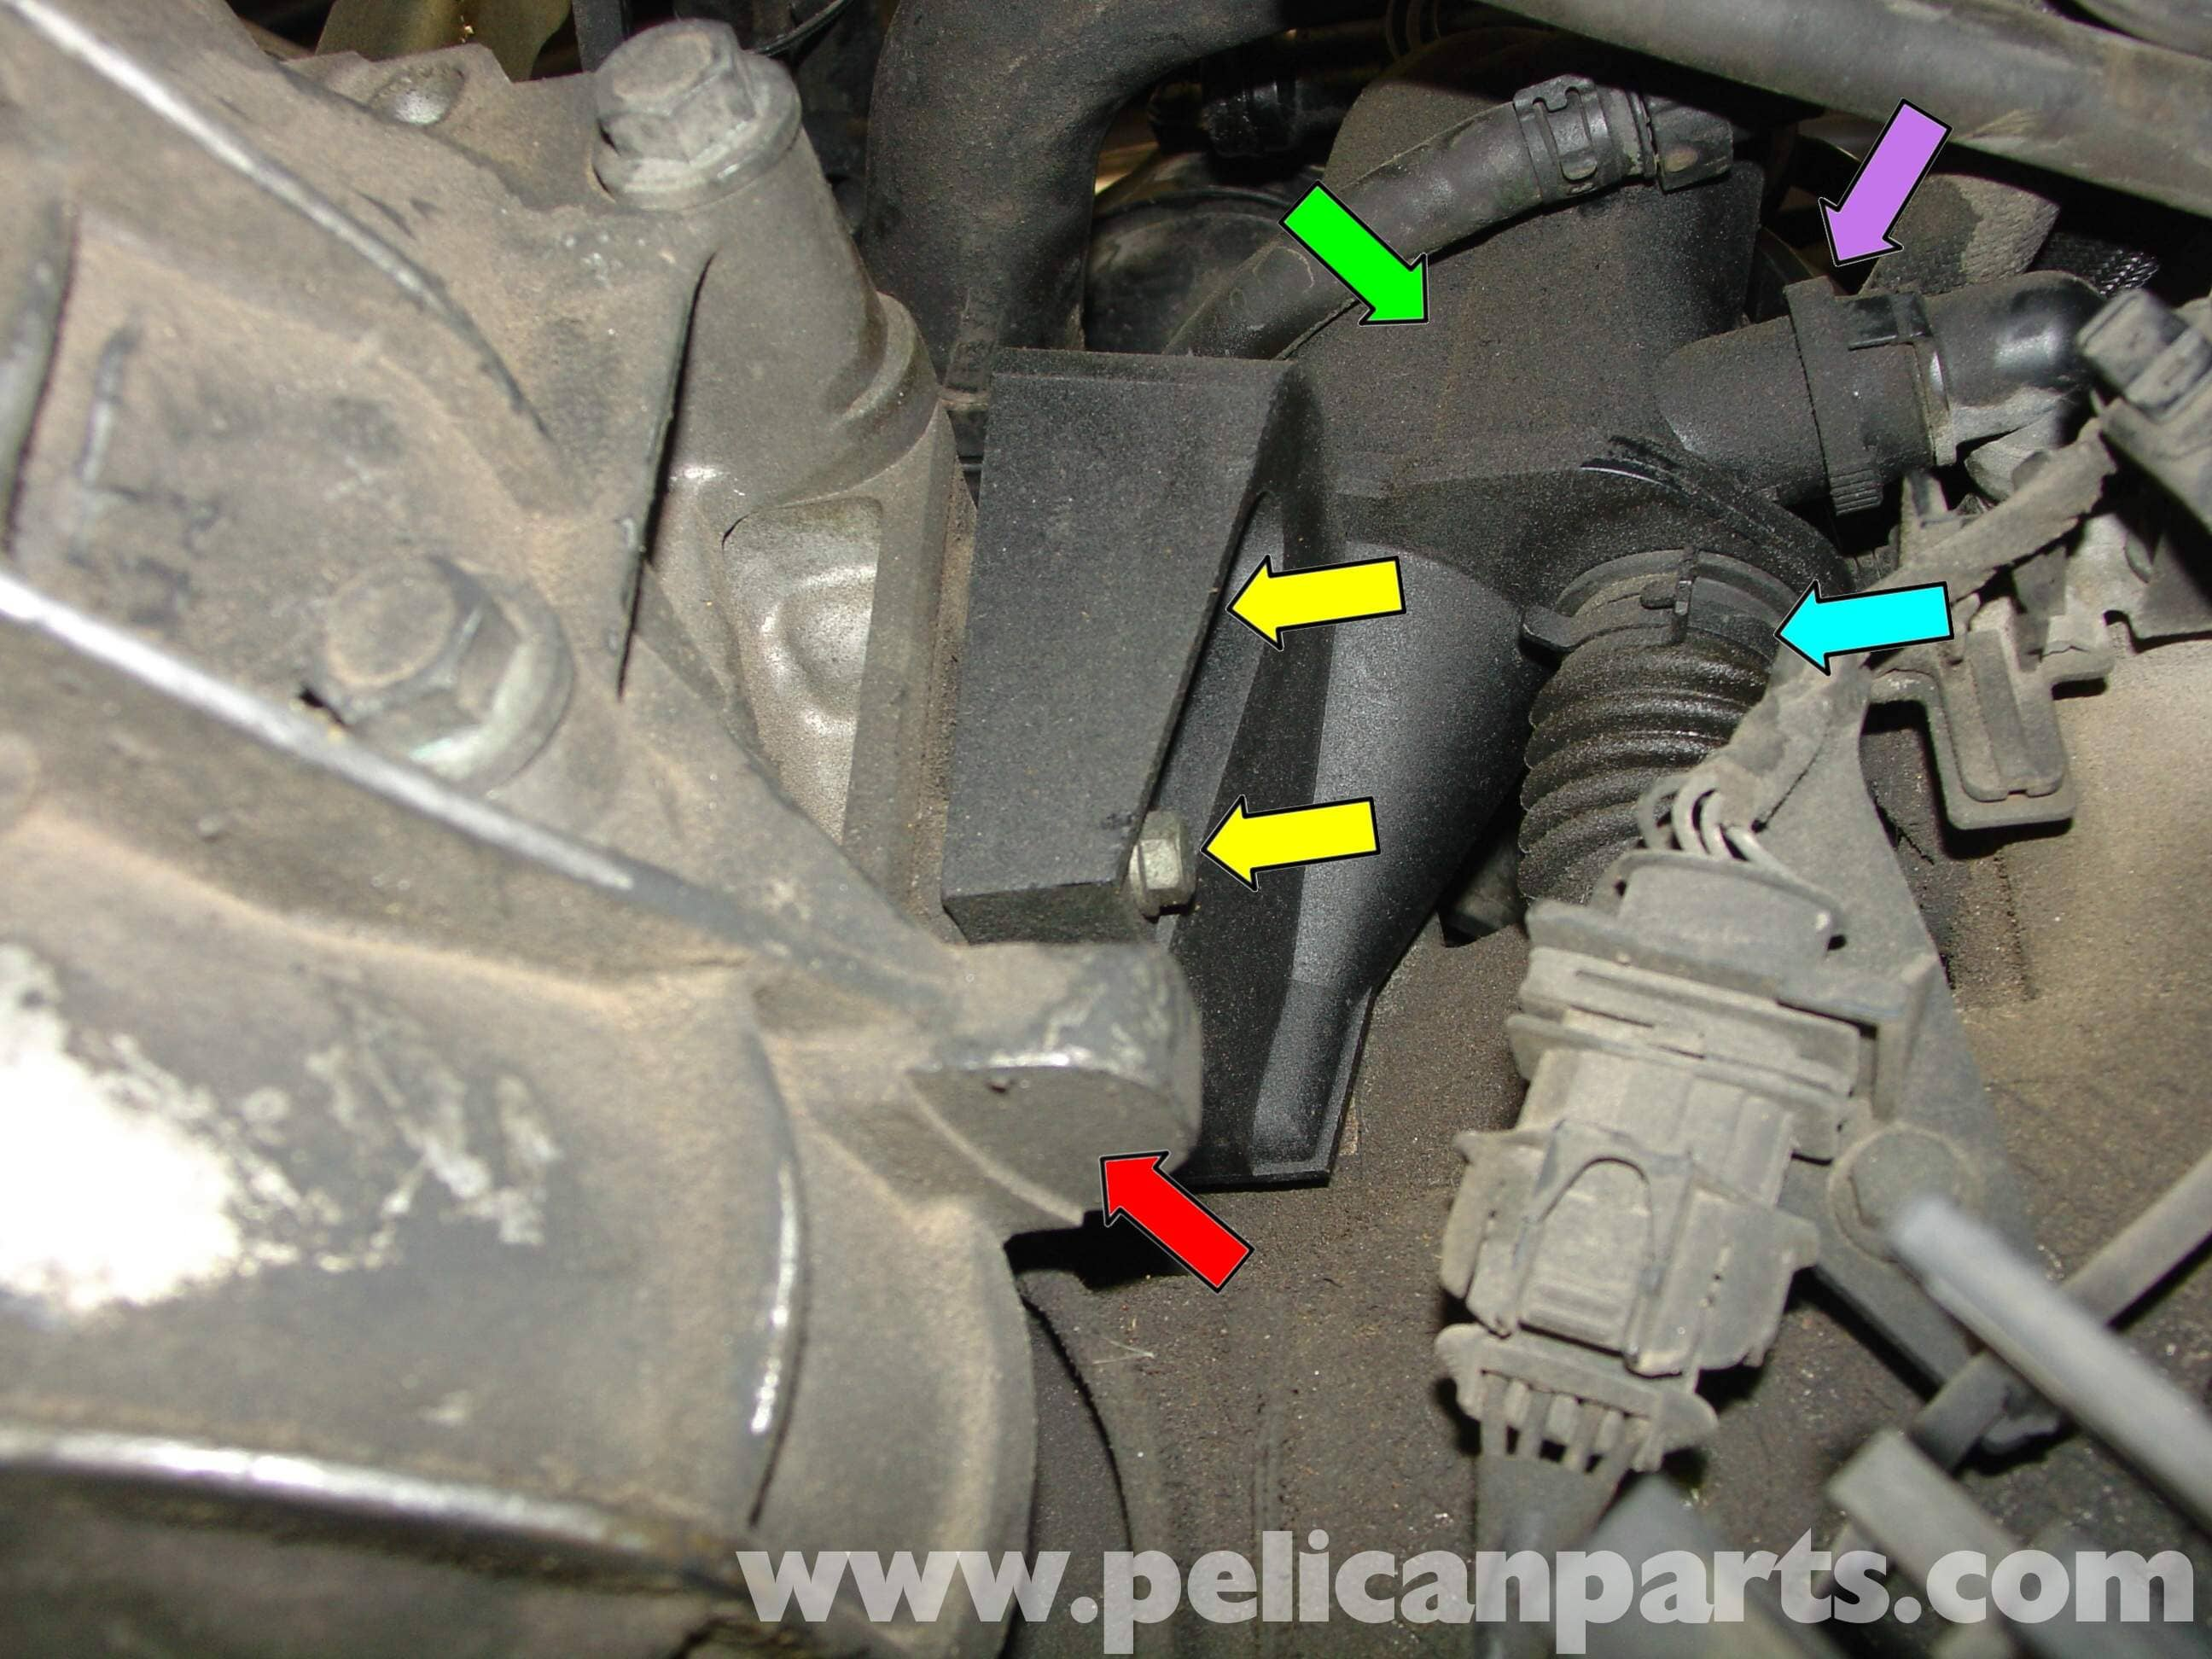 porsche 996 wiring diagram 2001 1994 toyota corolla alternator boxster 986 likewise engine moreover air oil separator replacement 987 1997 08